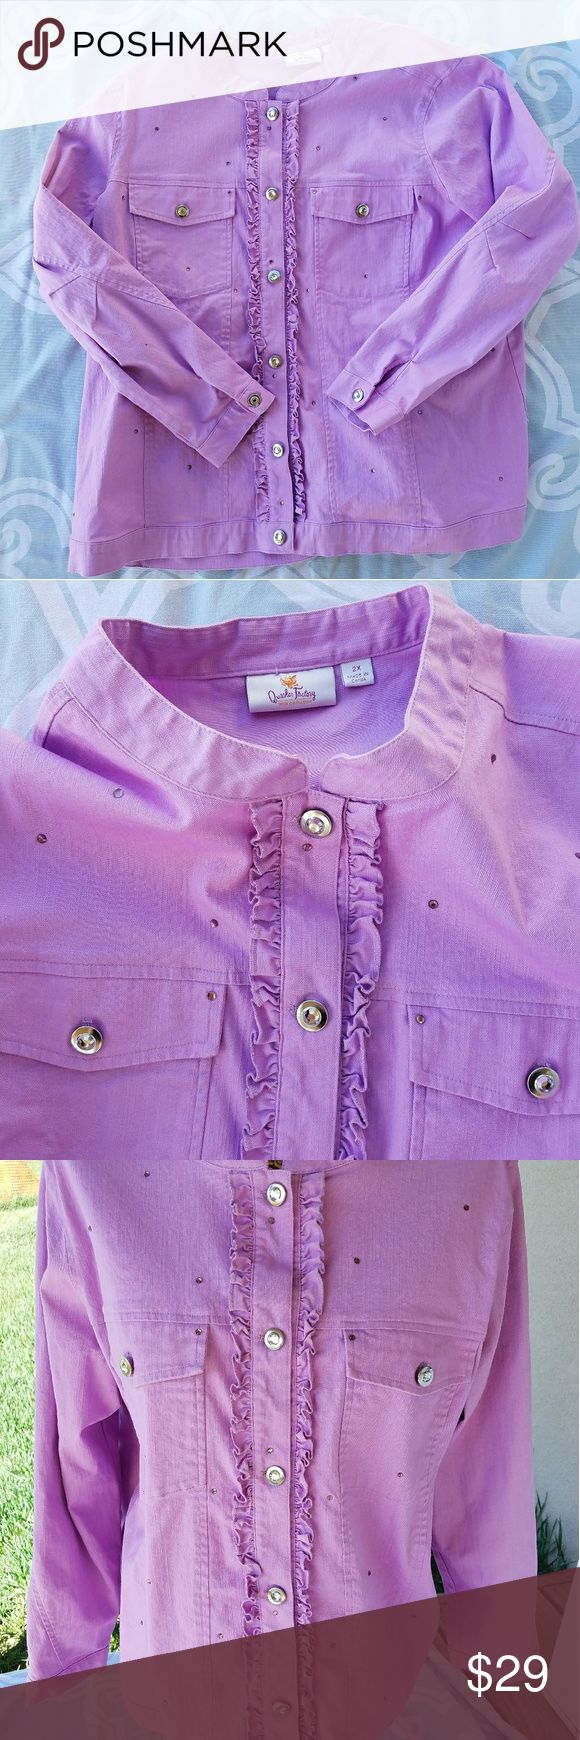 Quacker Factory lavender jean jacket Siize 2X Quacker Factory lavender jean jacket size 2X. The fabric is cotton and spandex so it has some good for comfort. Bling buttons and a ruffle placard. Excellent condition. Quacker Factory Jackets & Coats Jean Jackets